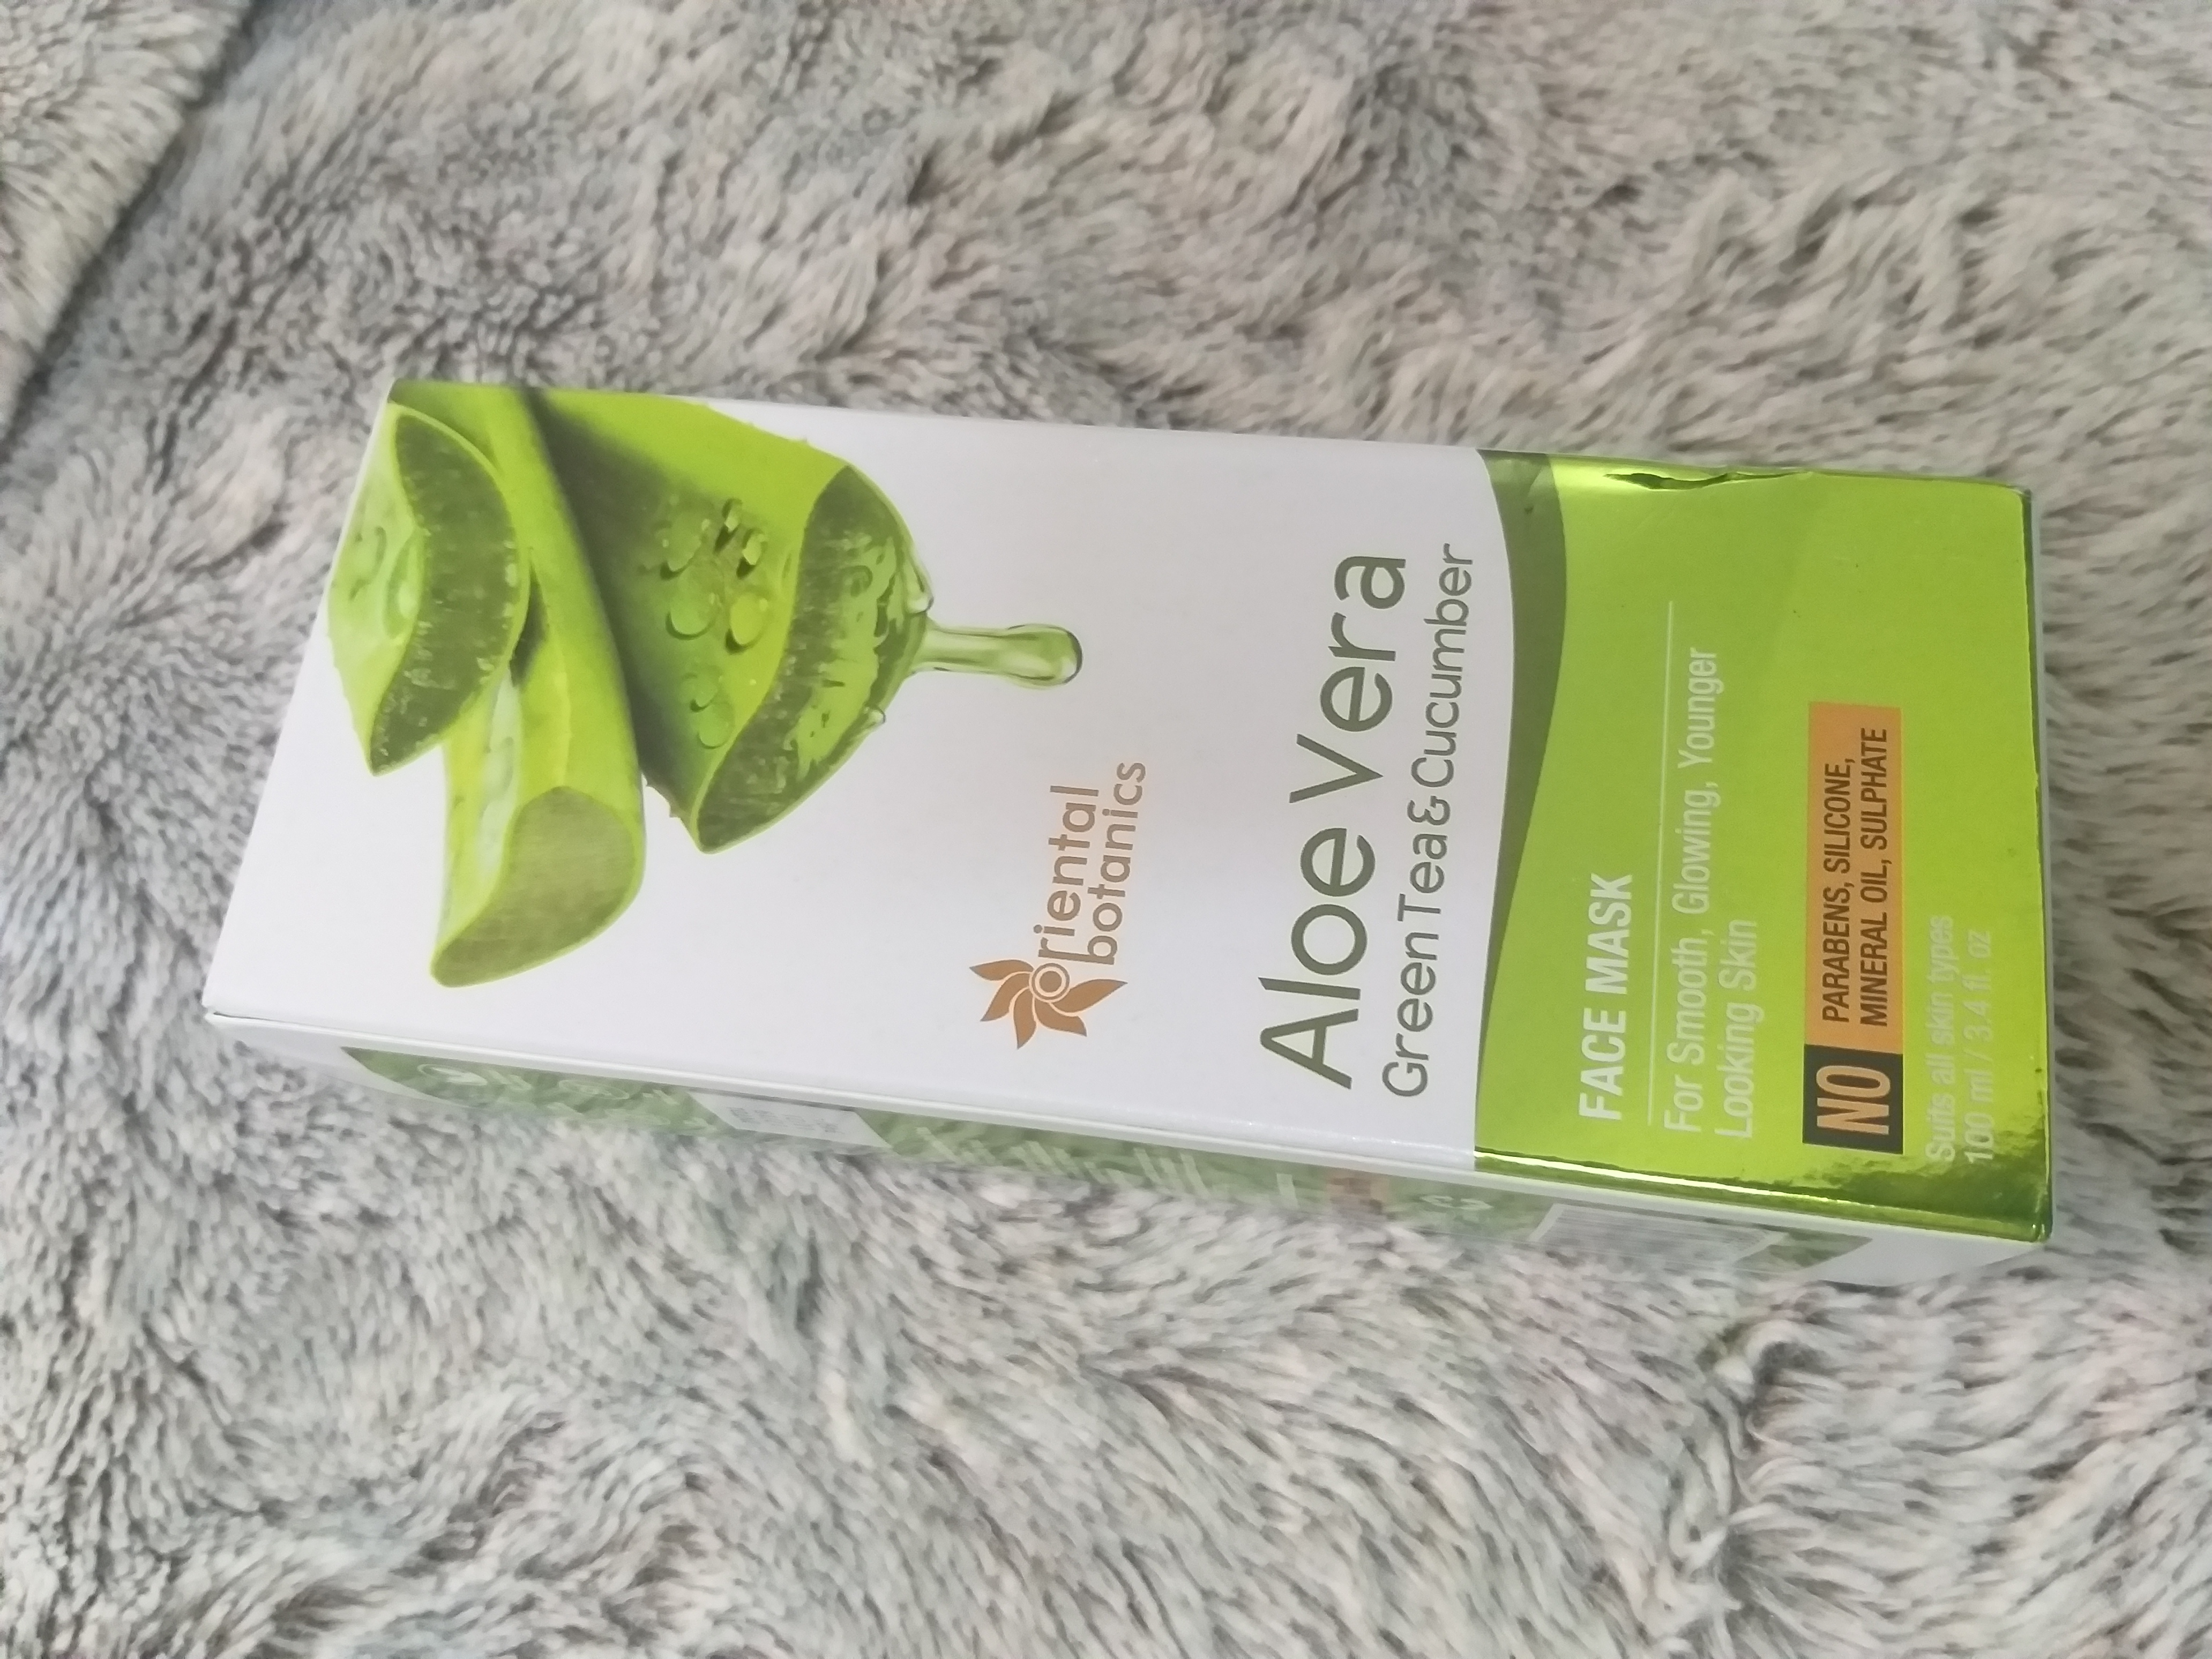 Oriental Botanics Aloe Vera, Green Tea & Cucumber Face Mask-For fresher and glowing looking skin-By beauty_mommies-1